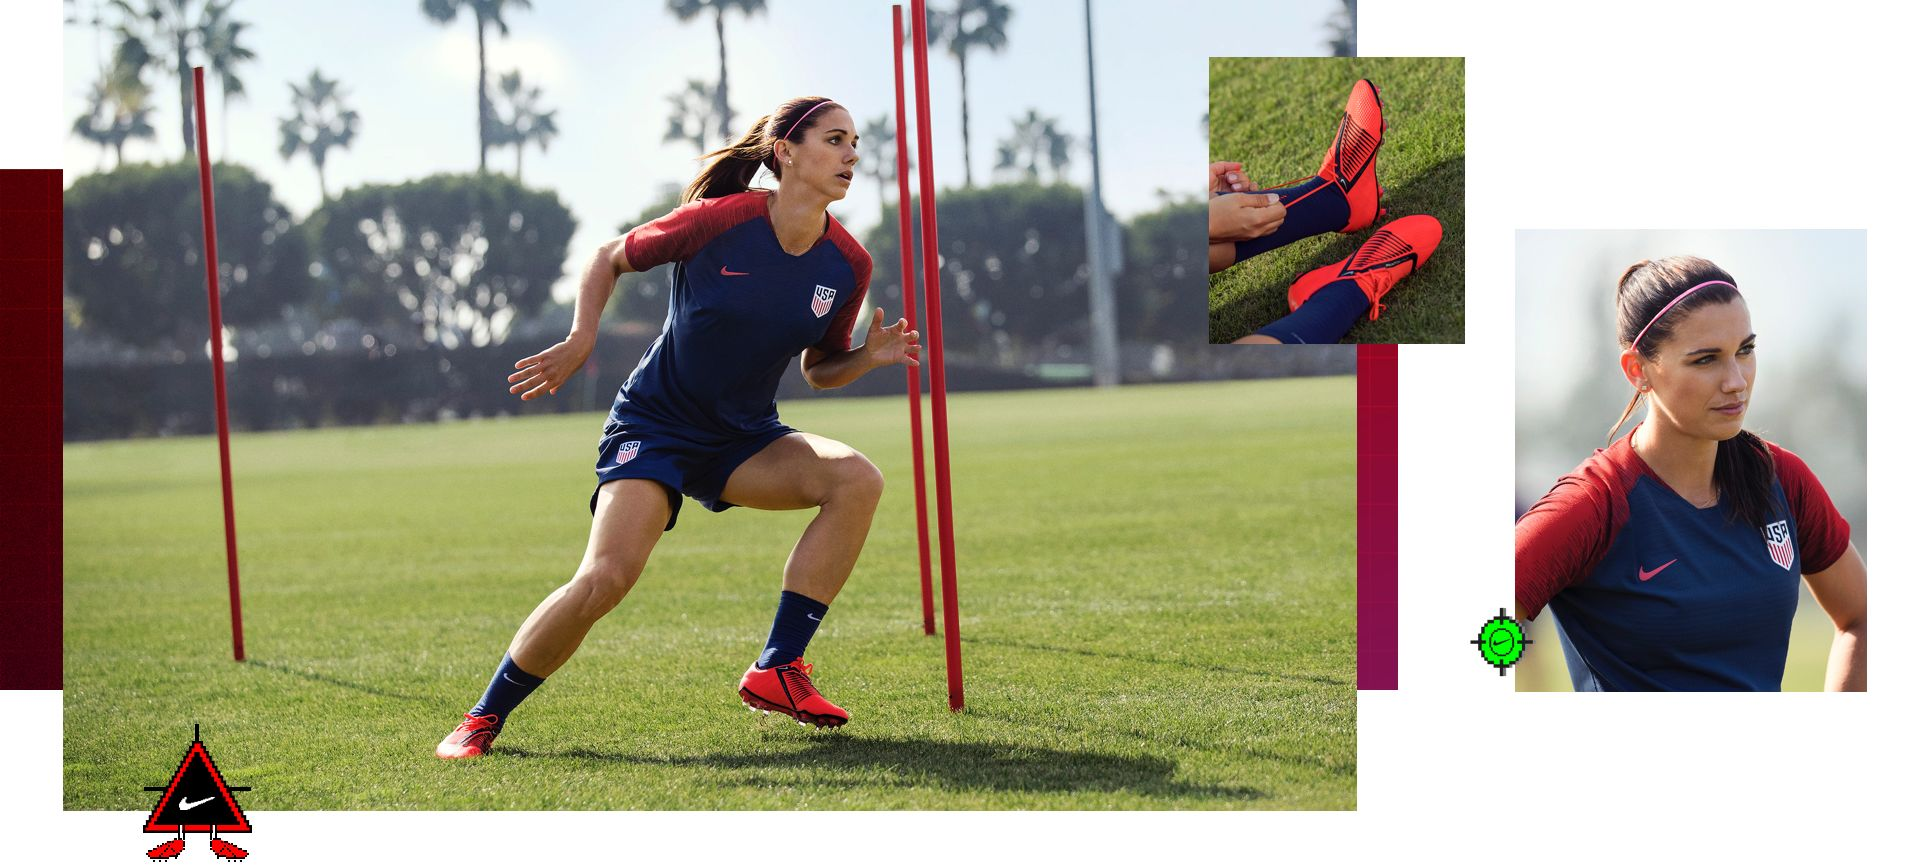 bd4dedc7f46f Training Unlocked With Alex Morgan. Nike.com